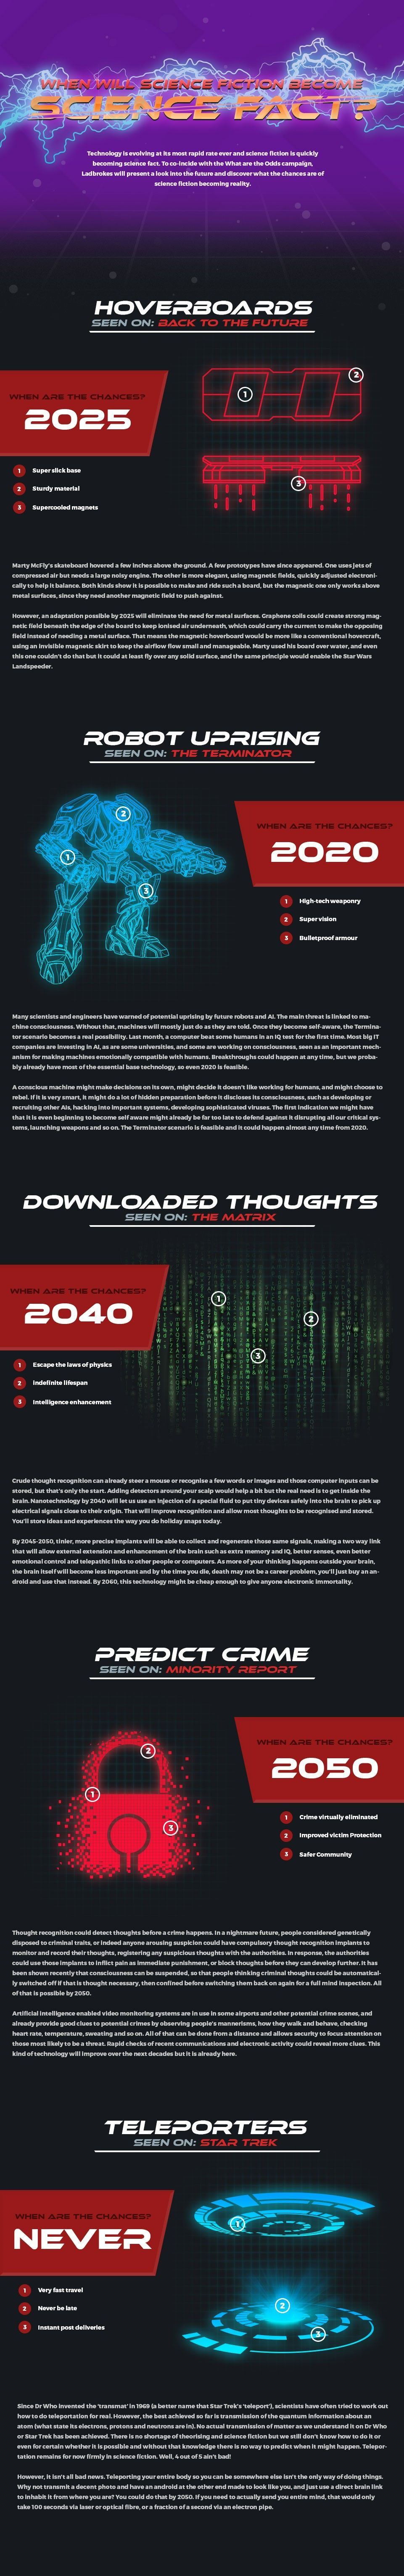 futuristic movies infographic